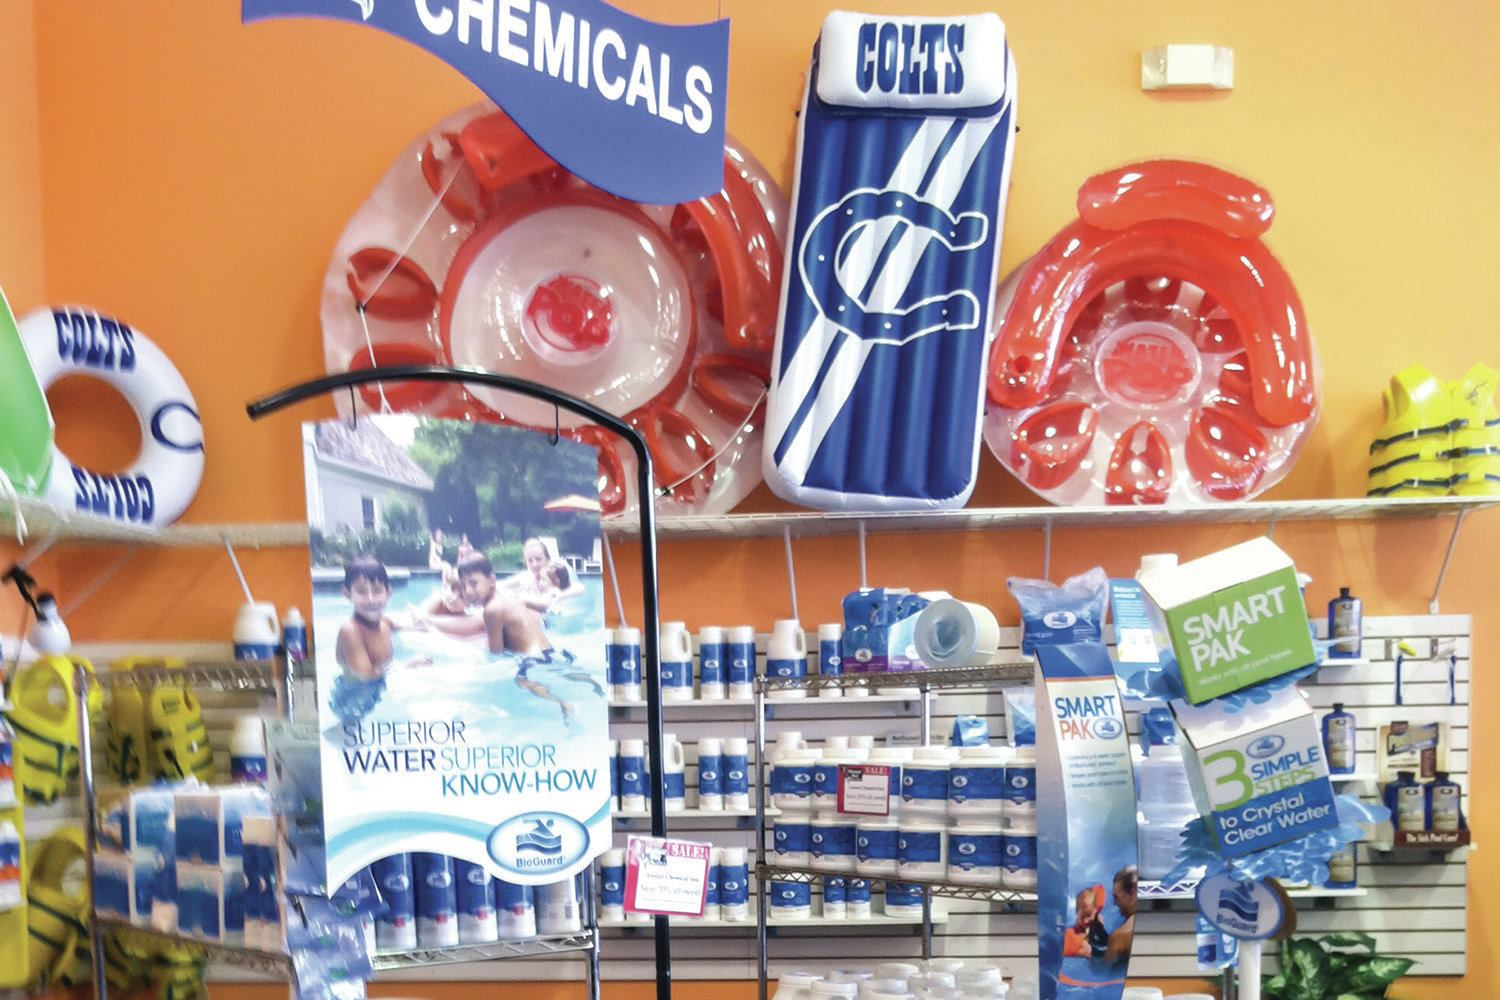 Chemical Displays Keep Customers Coming To The Pool Store